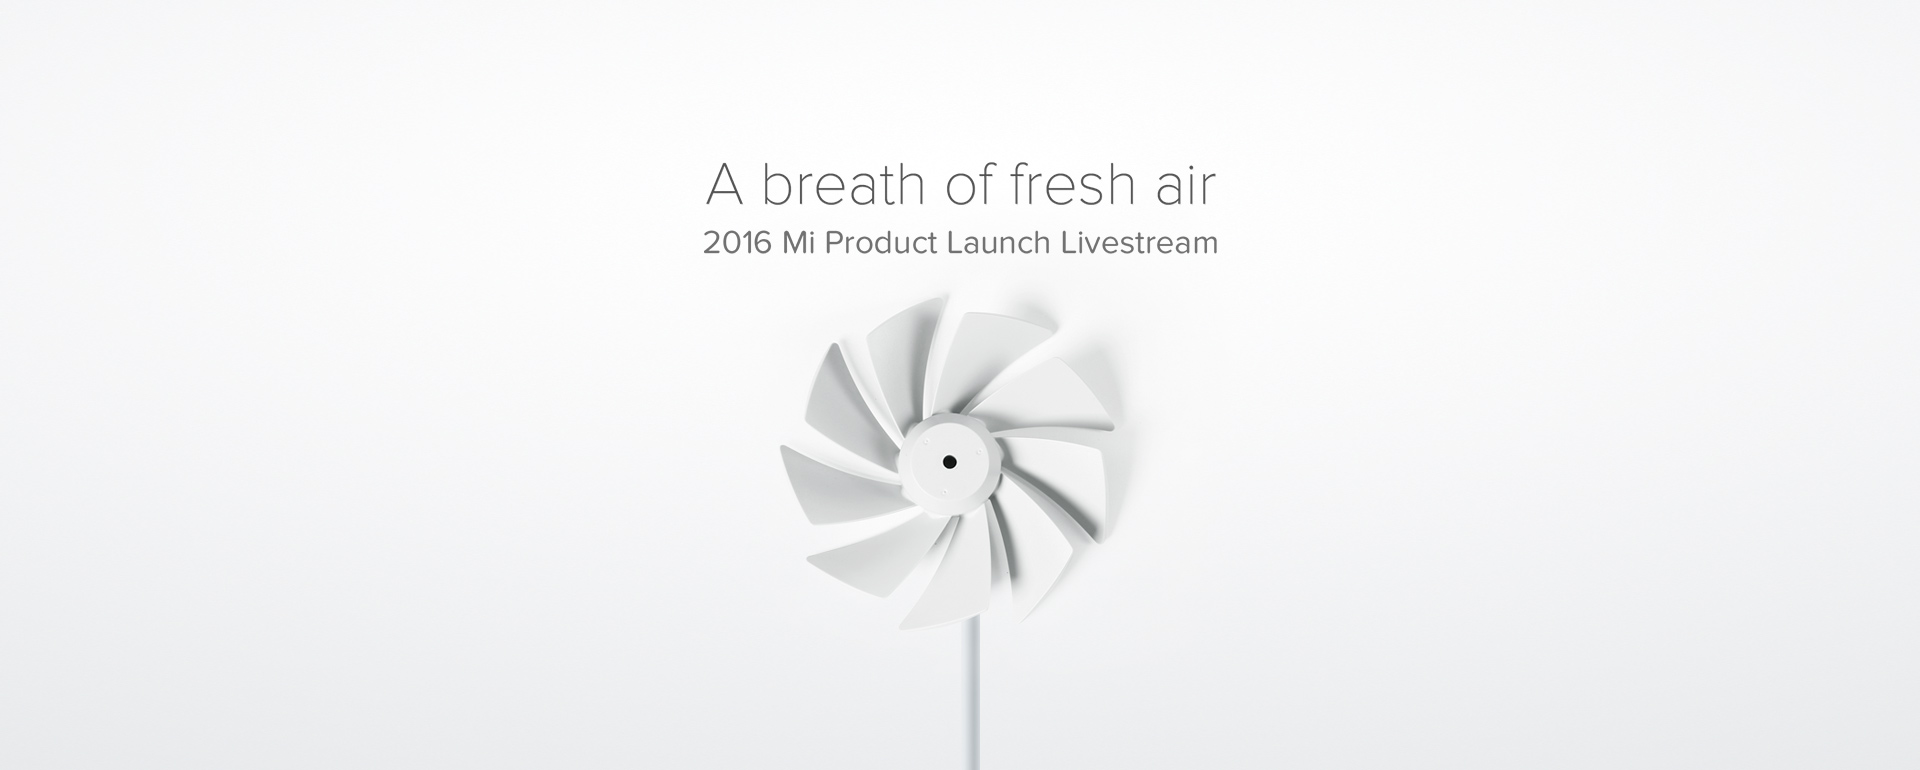 Full List Of 2016 New Product Launch Live Stream Lucky Draw Winners